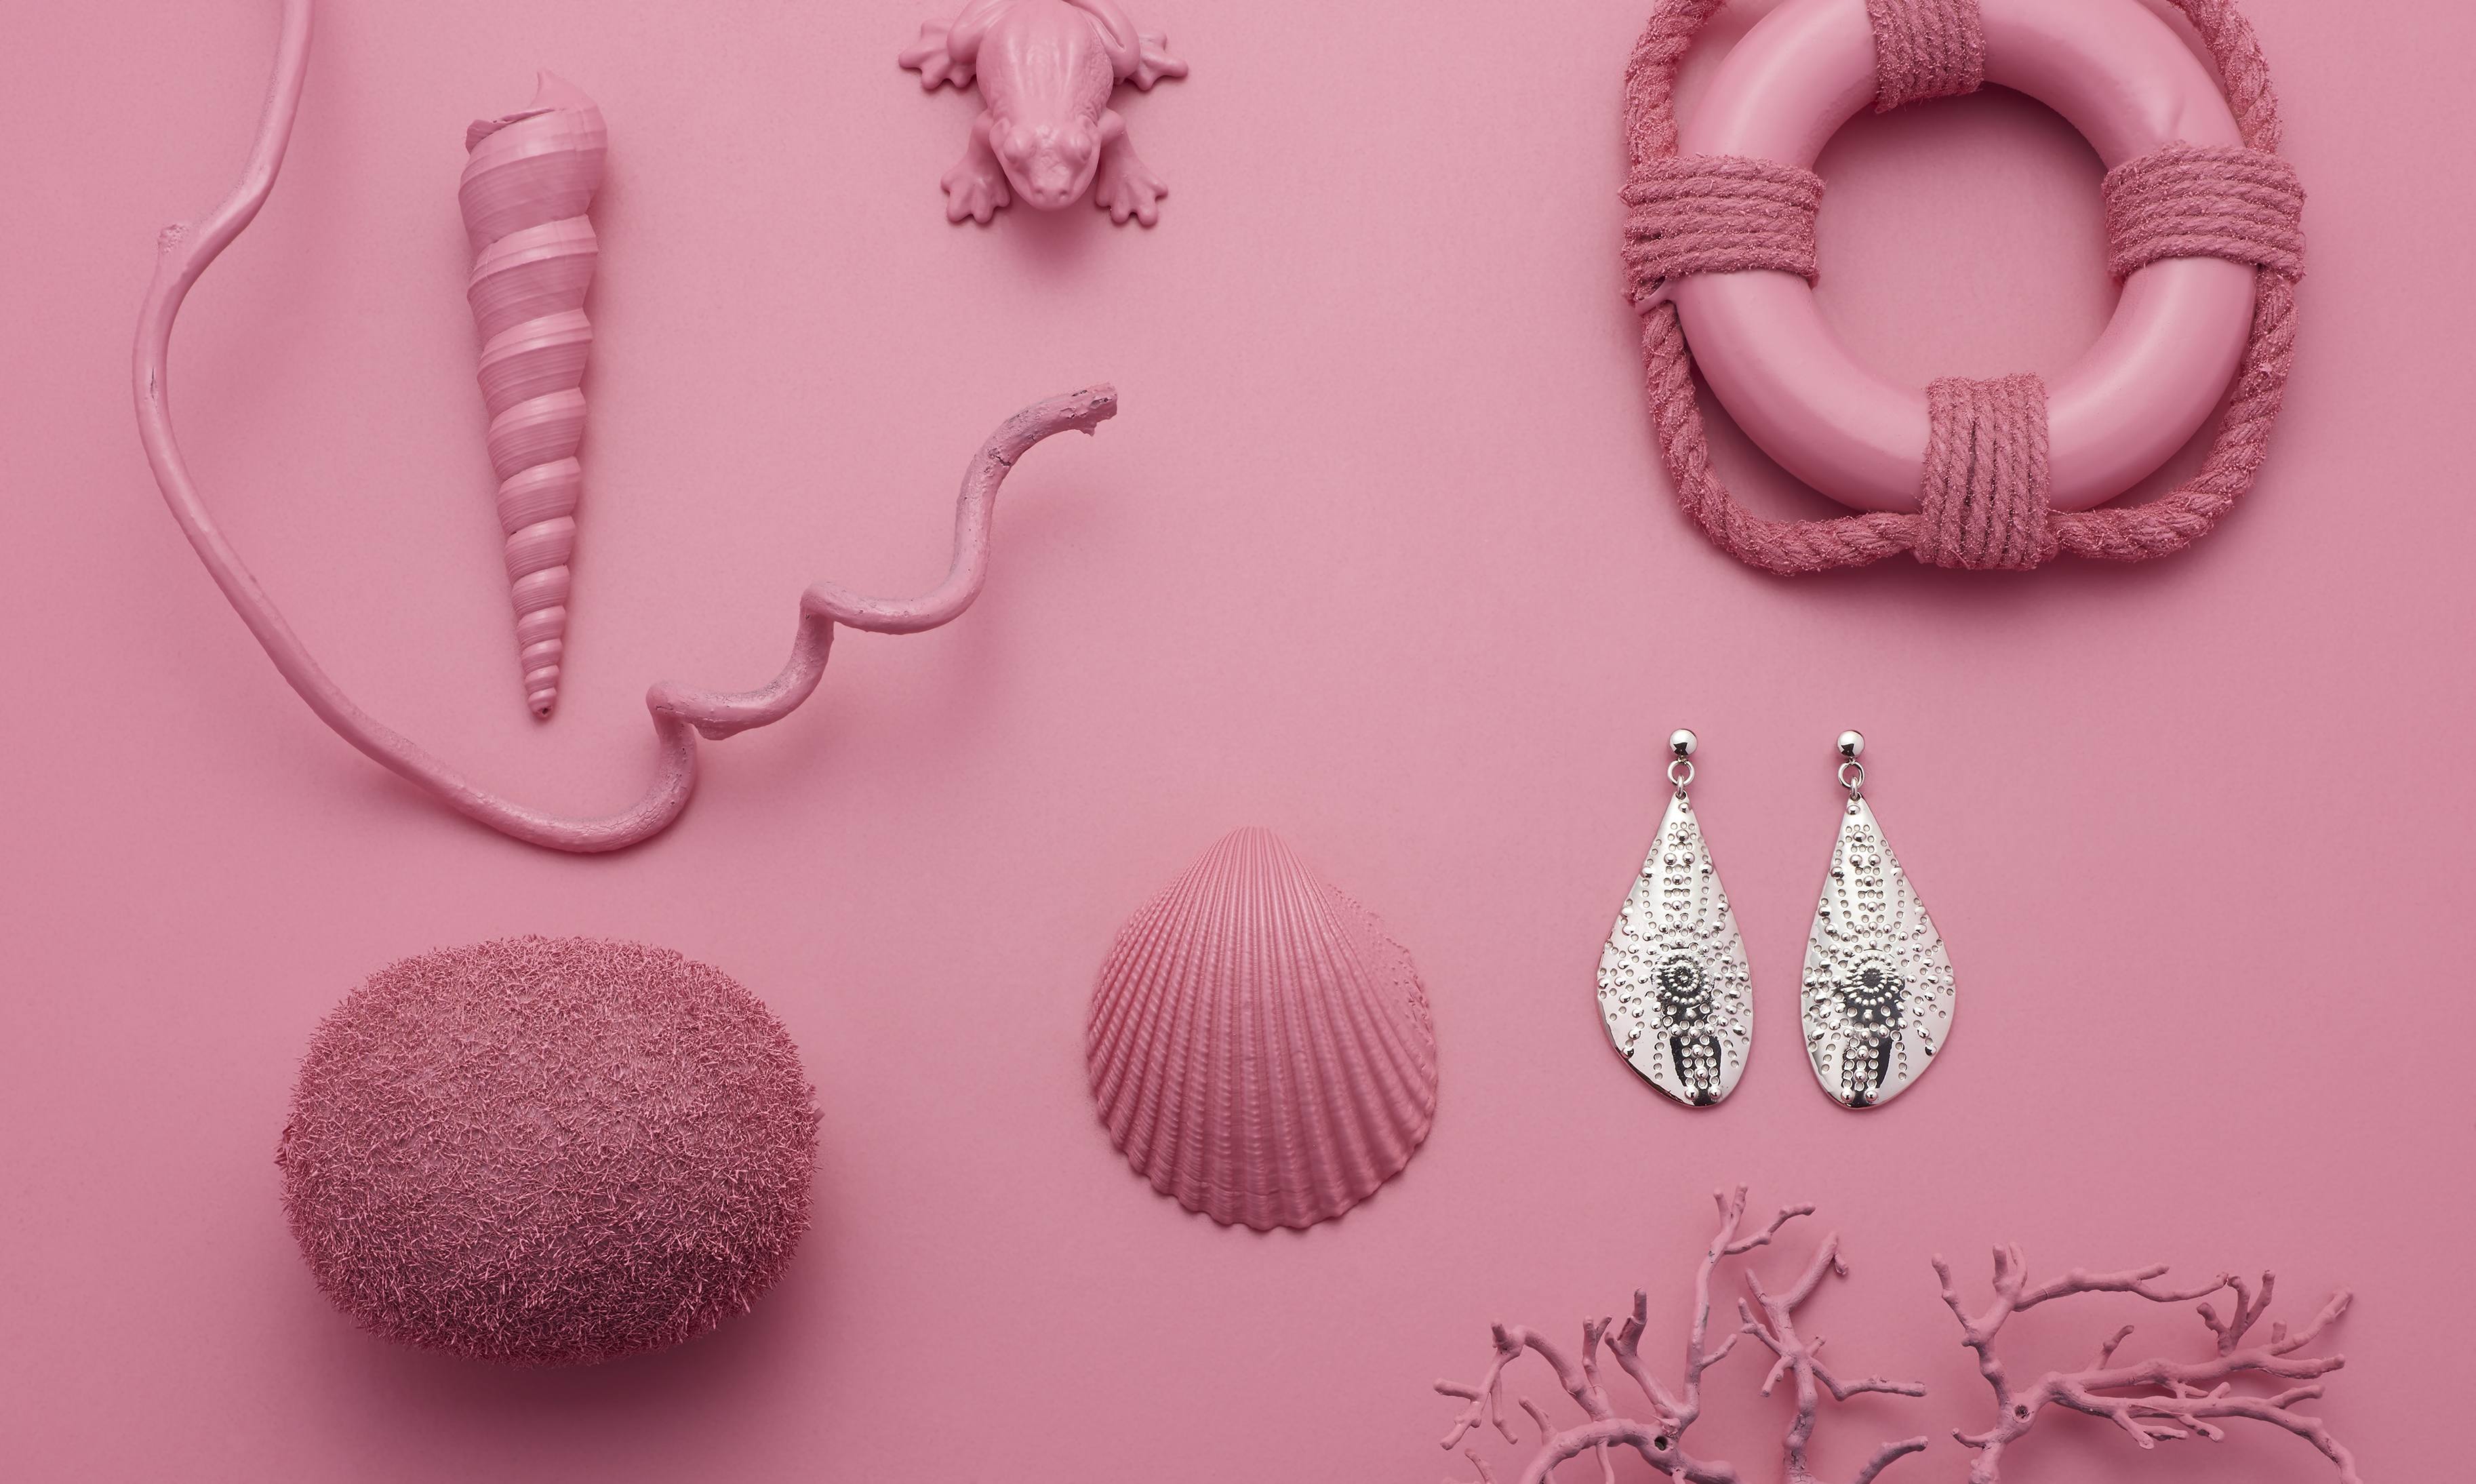 collection fond rose, boucles d'oreilles coquillage argent strass, 59€, Energetix